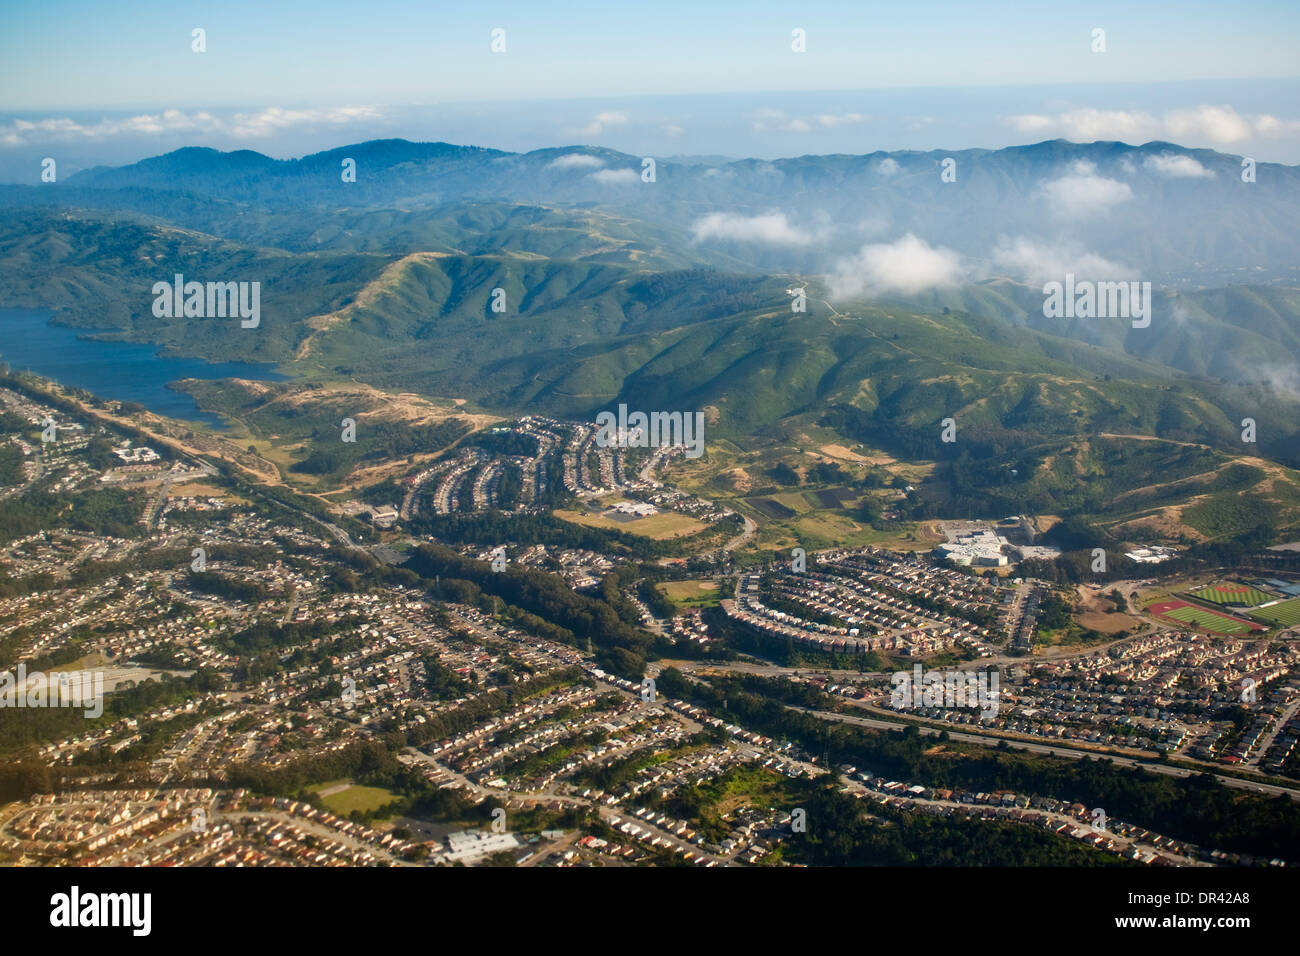 Plus d'antenne de la péninsule de San Francisco et le tremblement de terre de San Andreas problème, près de Daly City, Californie Photo Stock